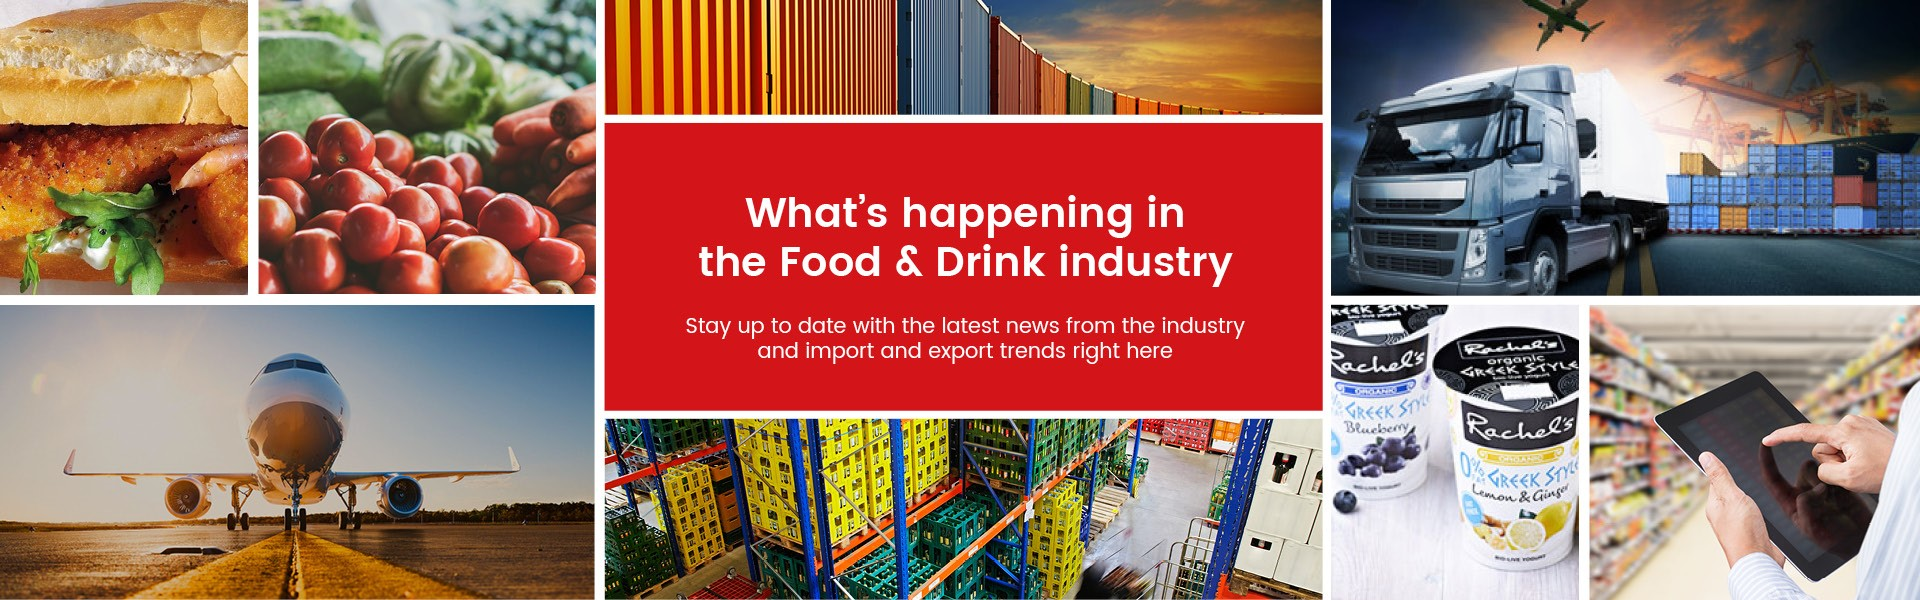 Food and Drink Industry News